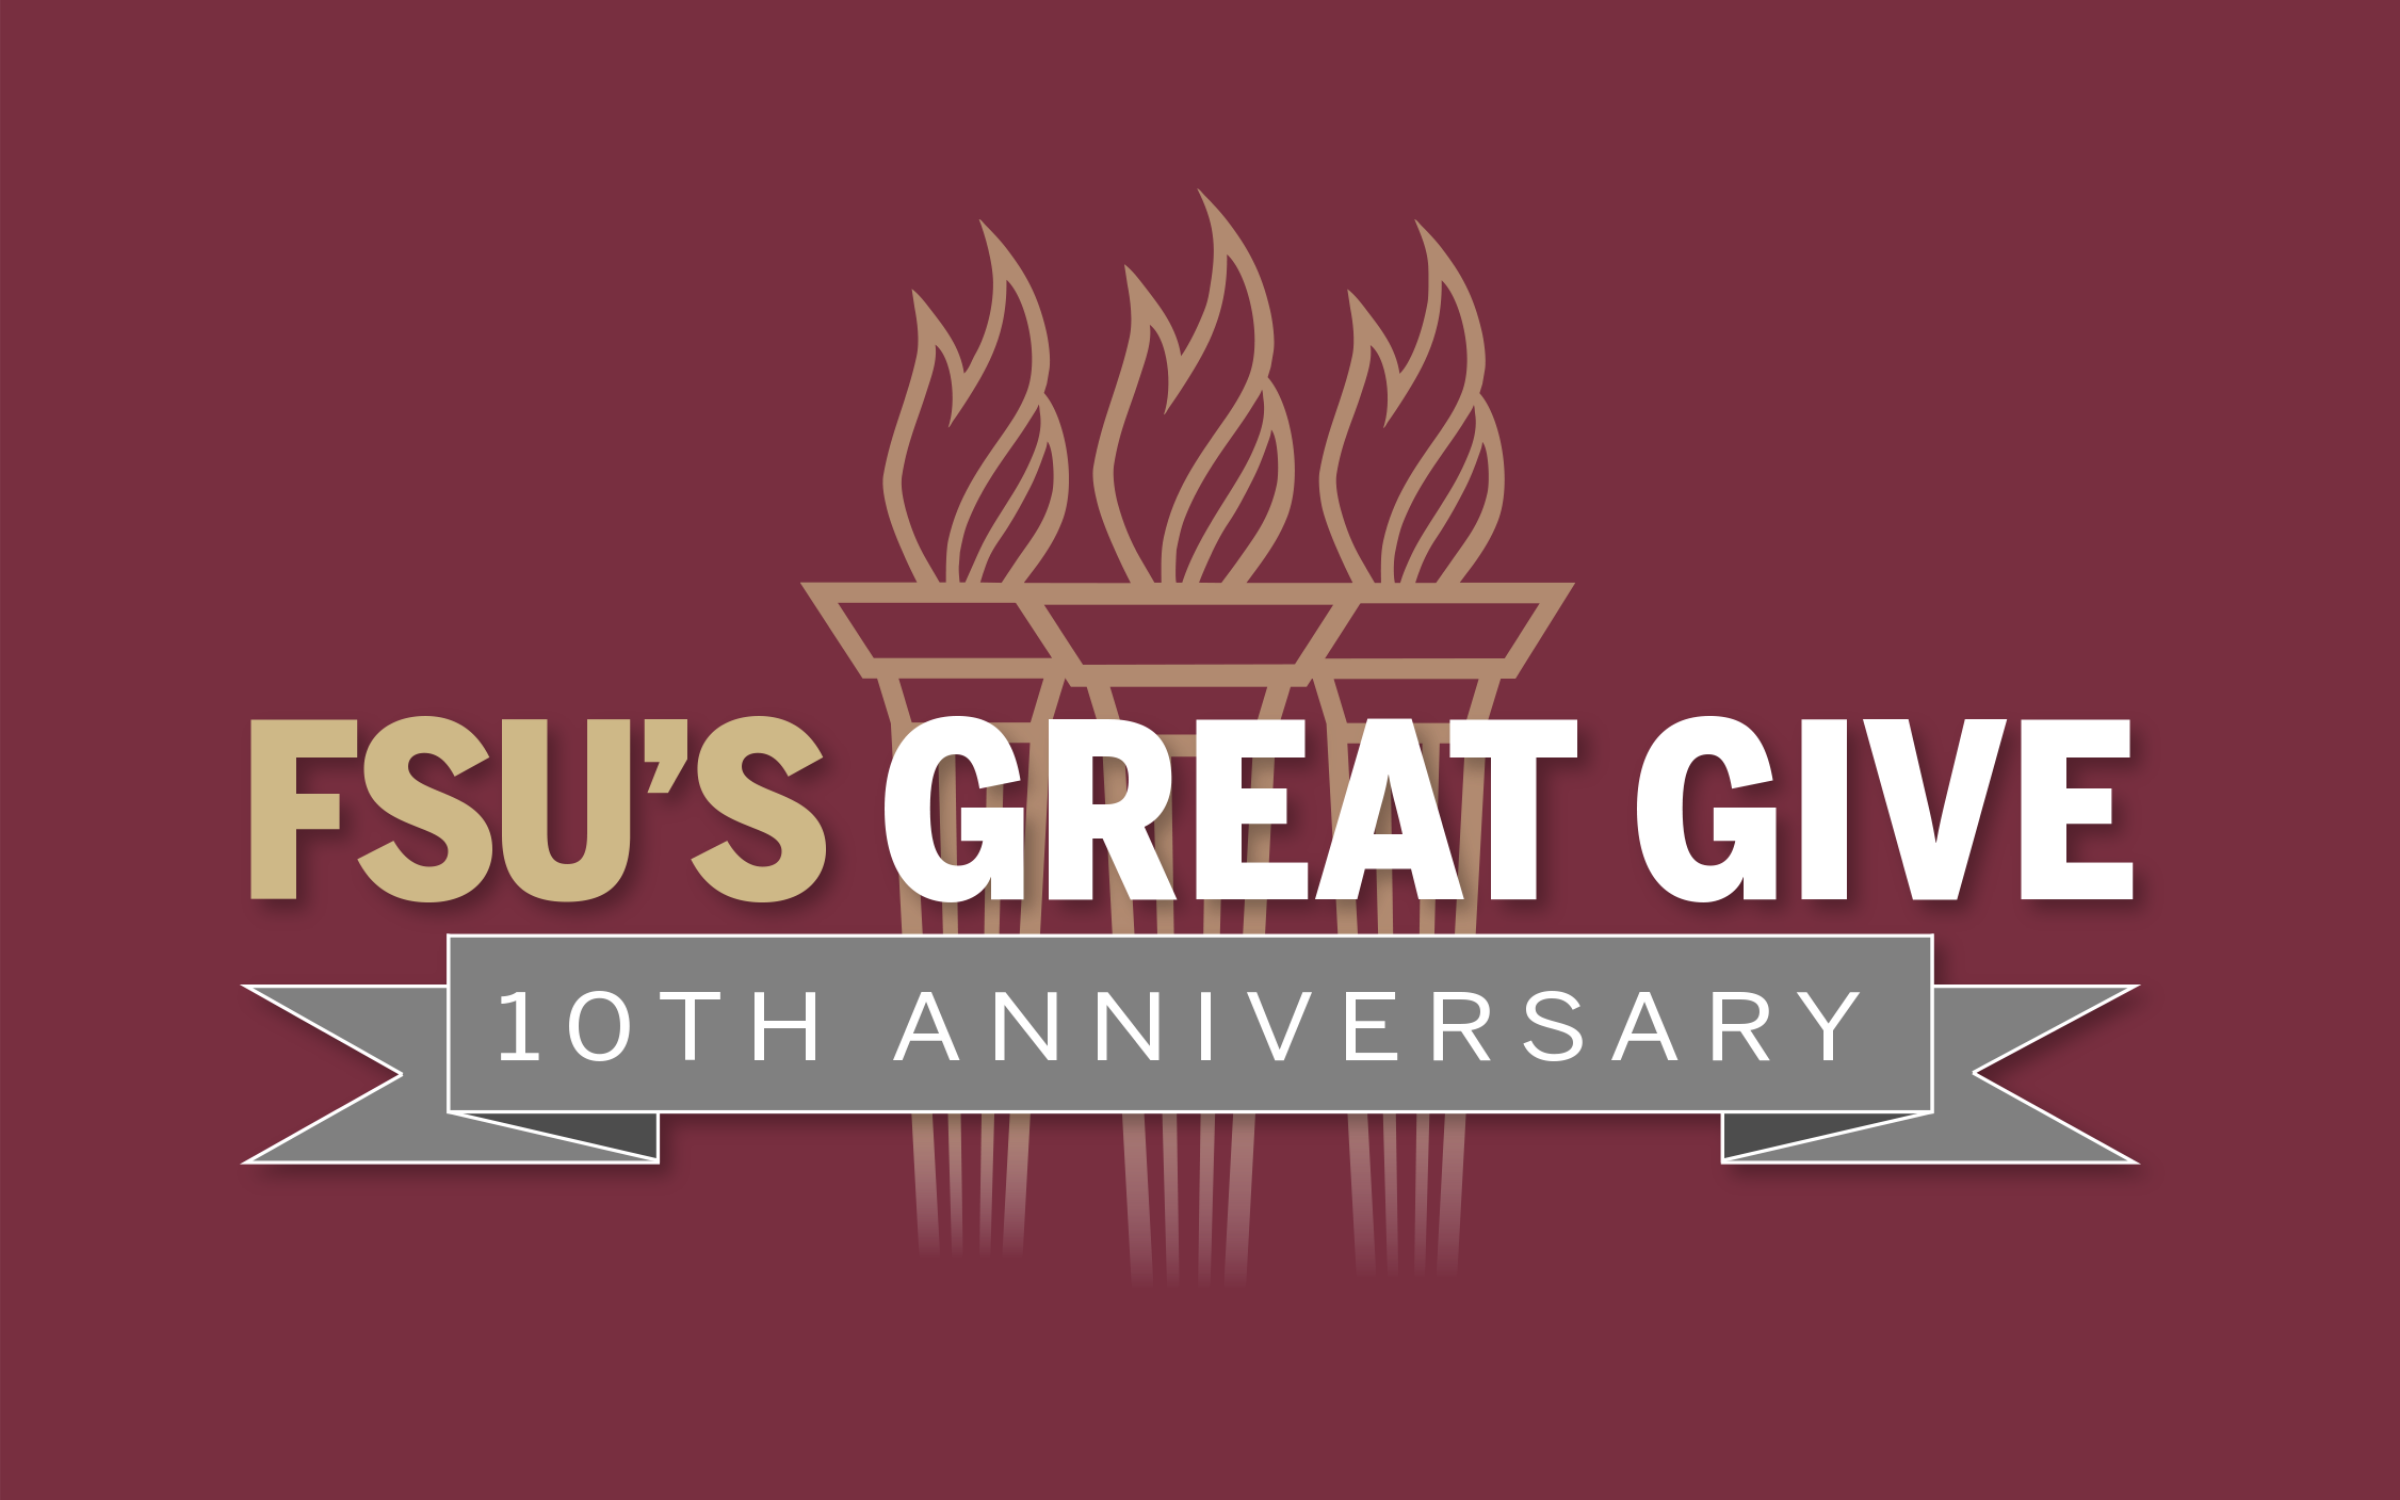 Great Give 10 Anniversary logo